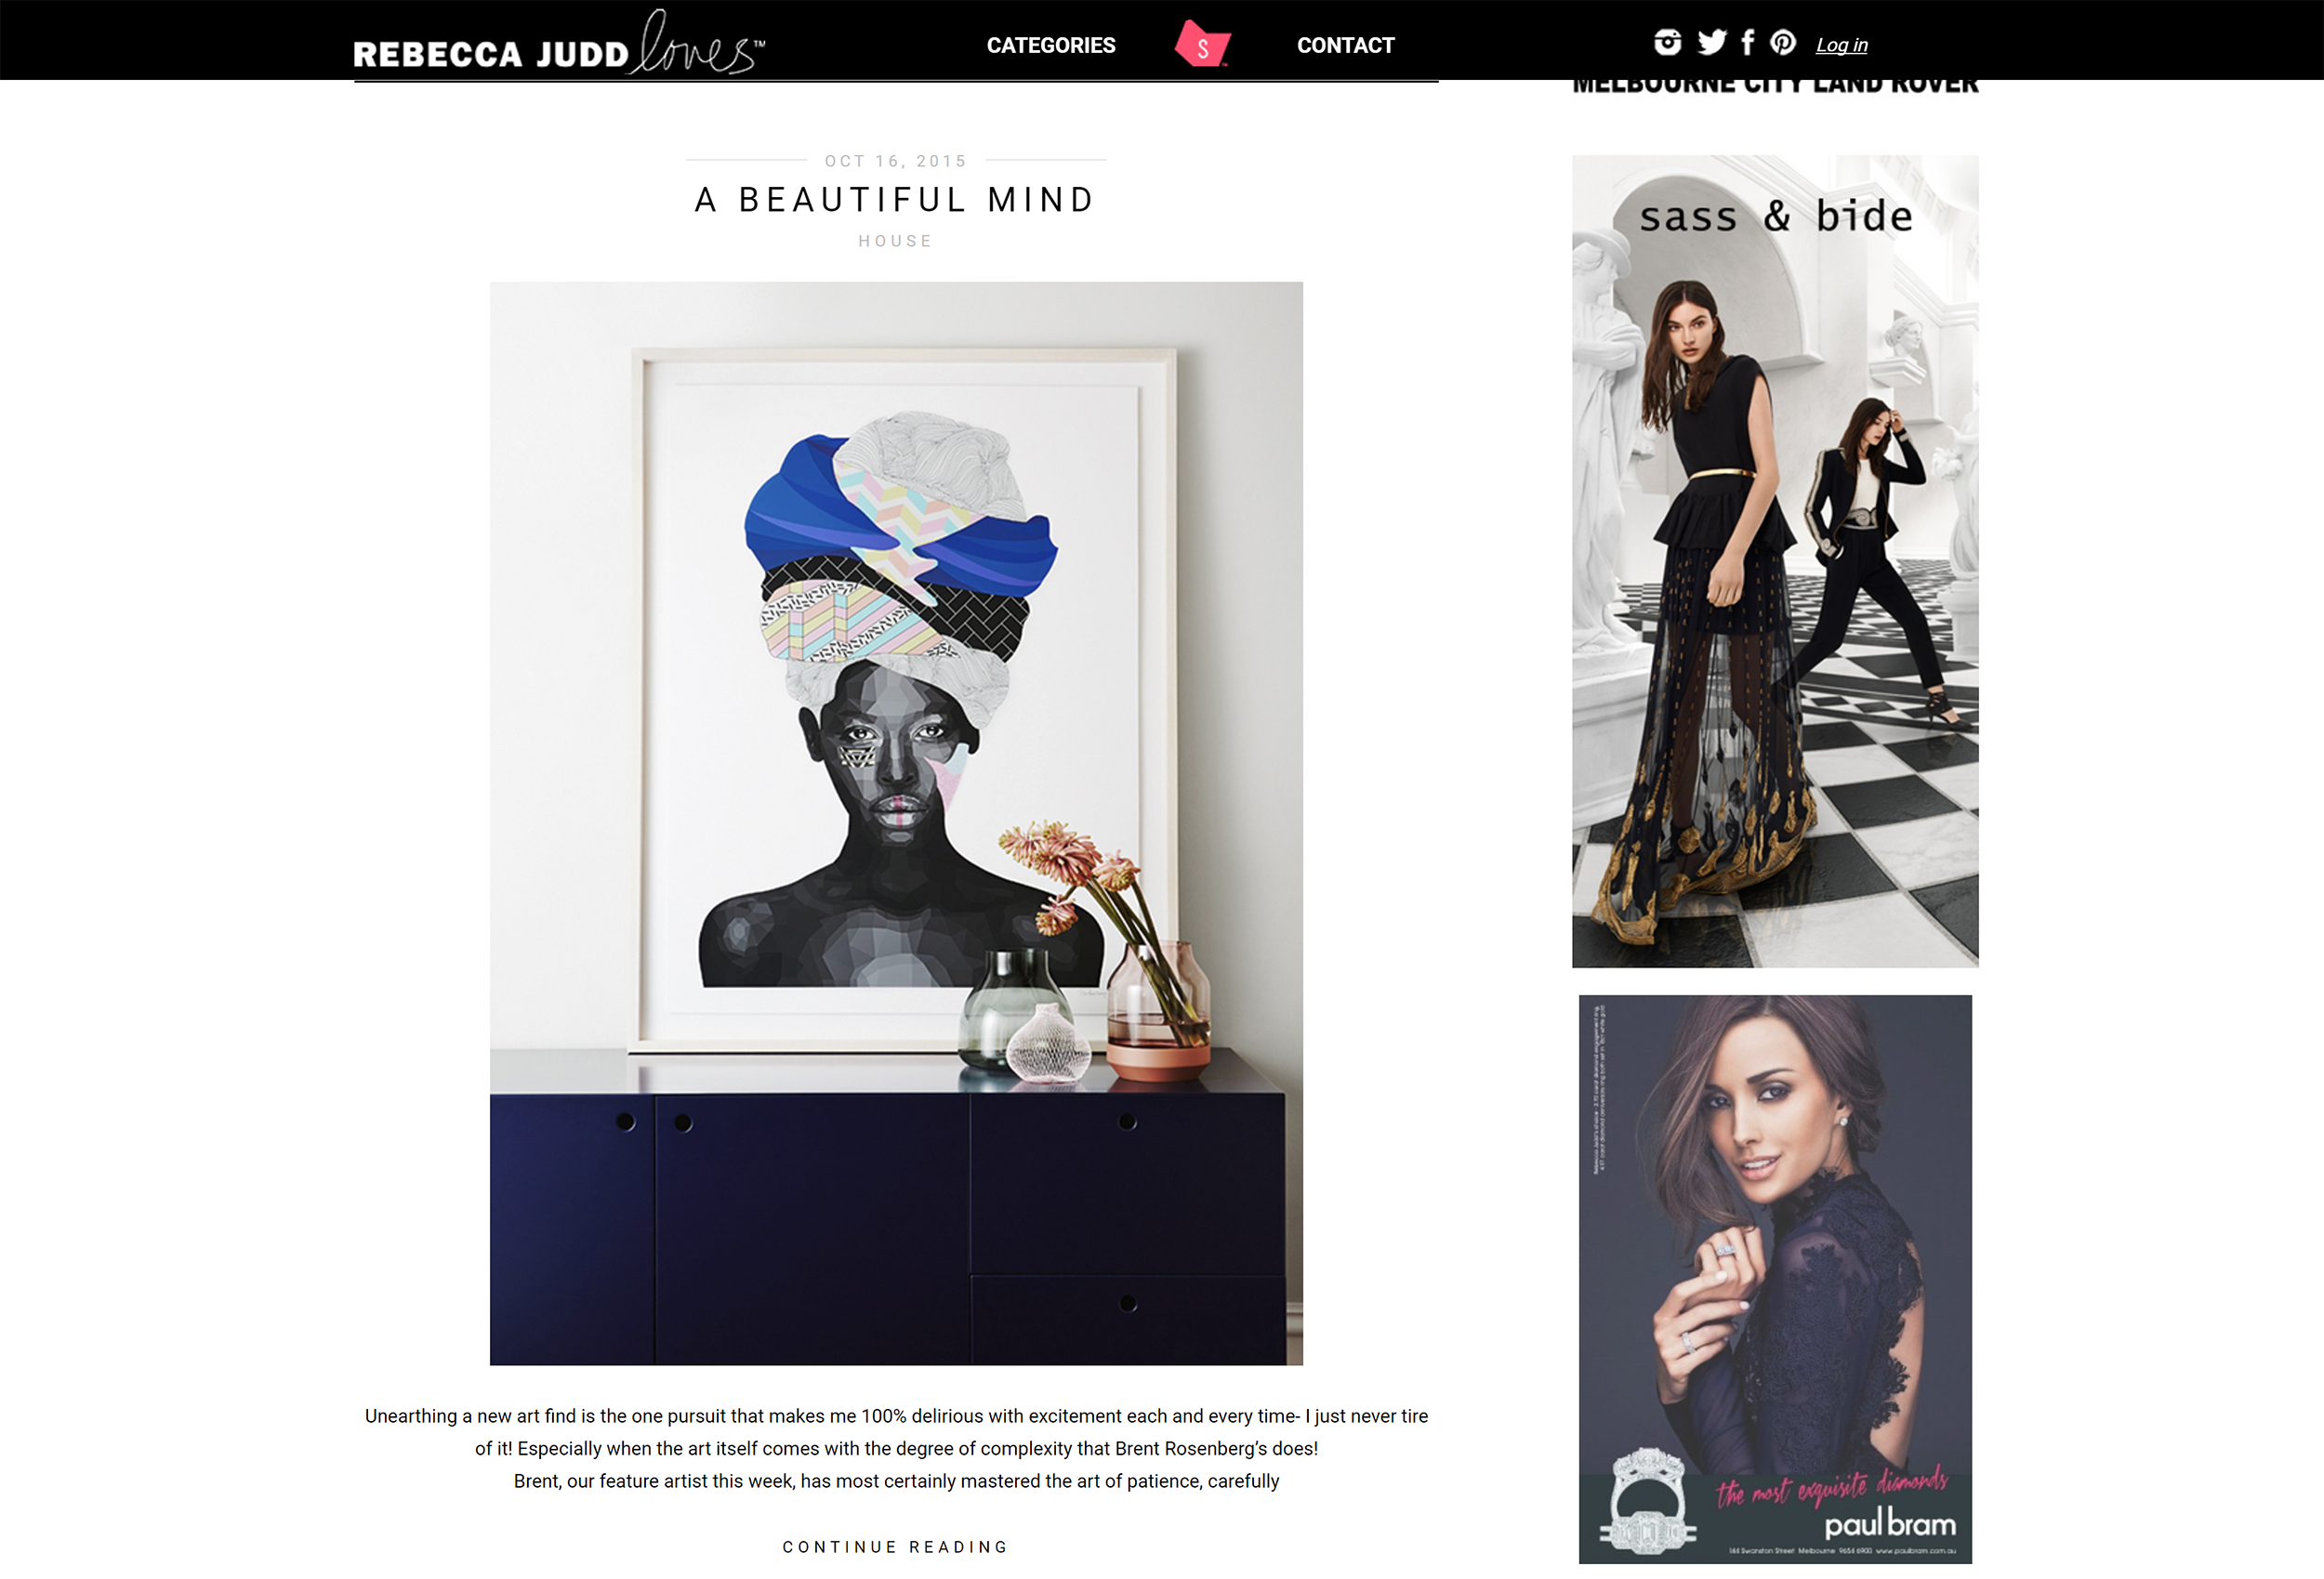 REBECCA JUDD LOVES- My first 'Miss' series was launched on Rebecca Judd Loves.